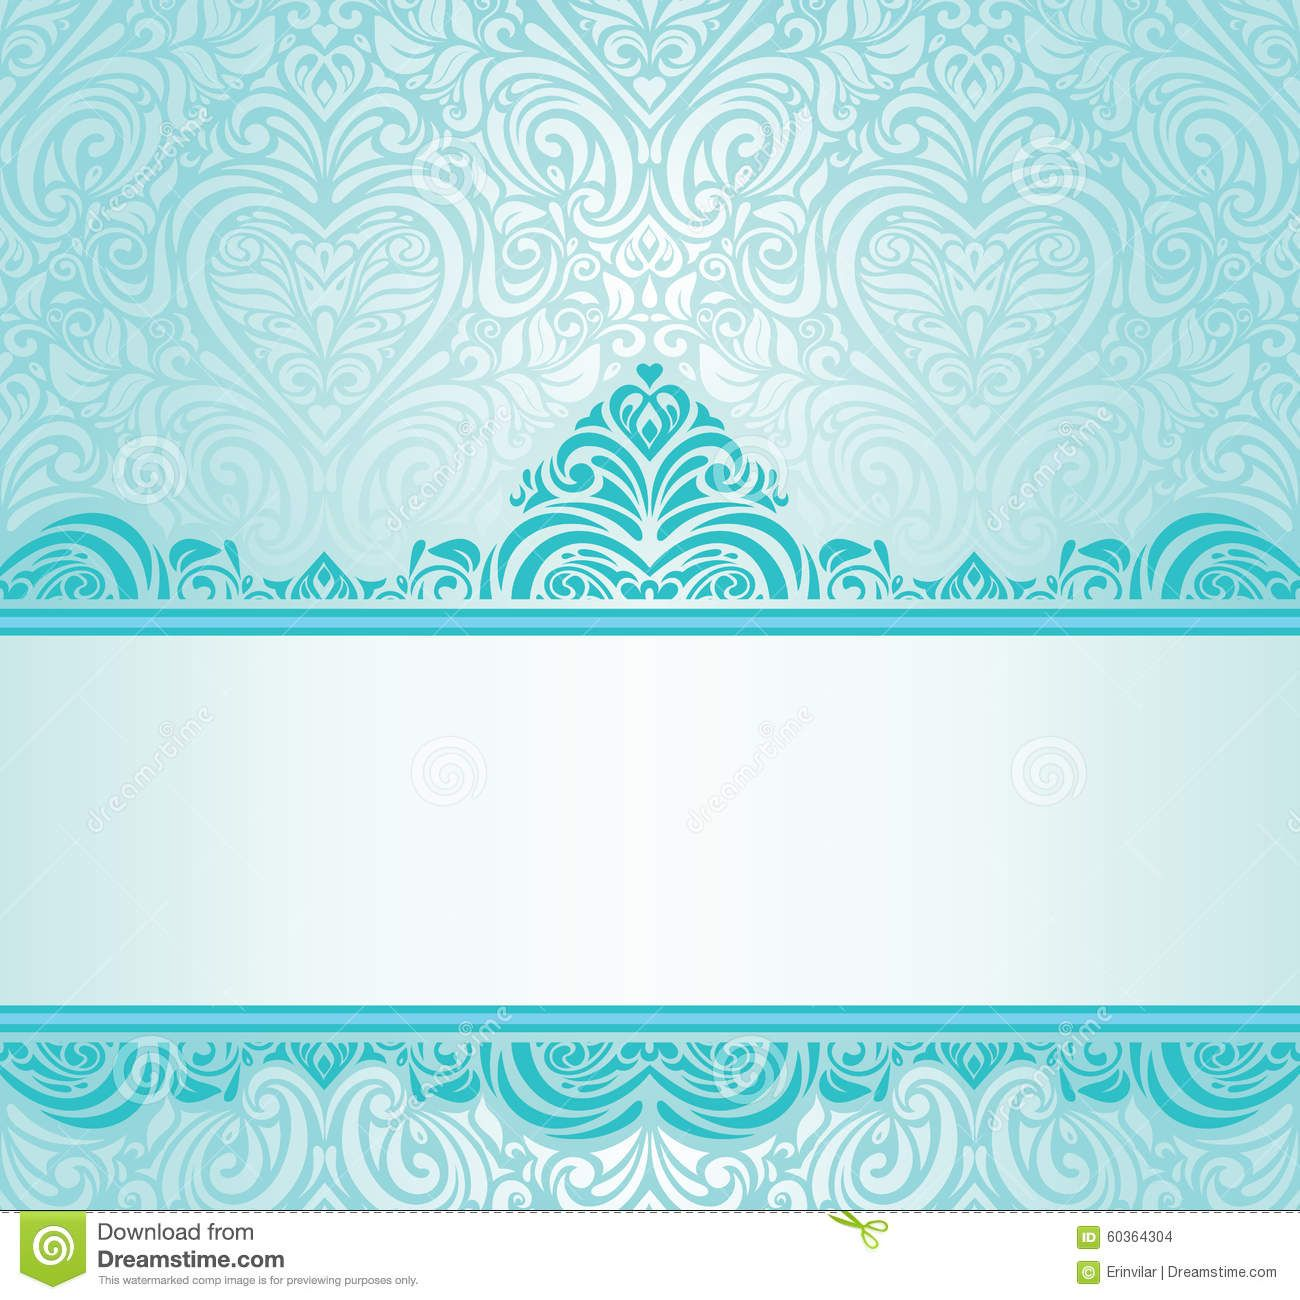 Turquoise Blue Wedding Invitation Background Matik For Bautizo